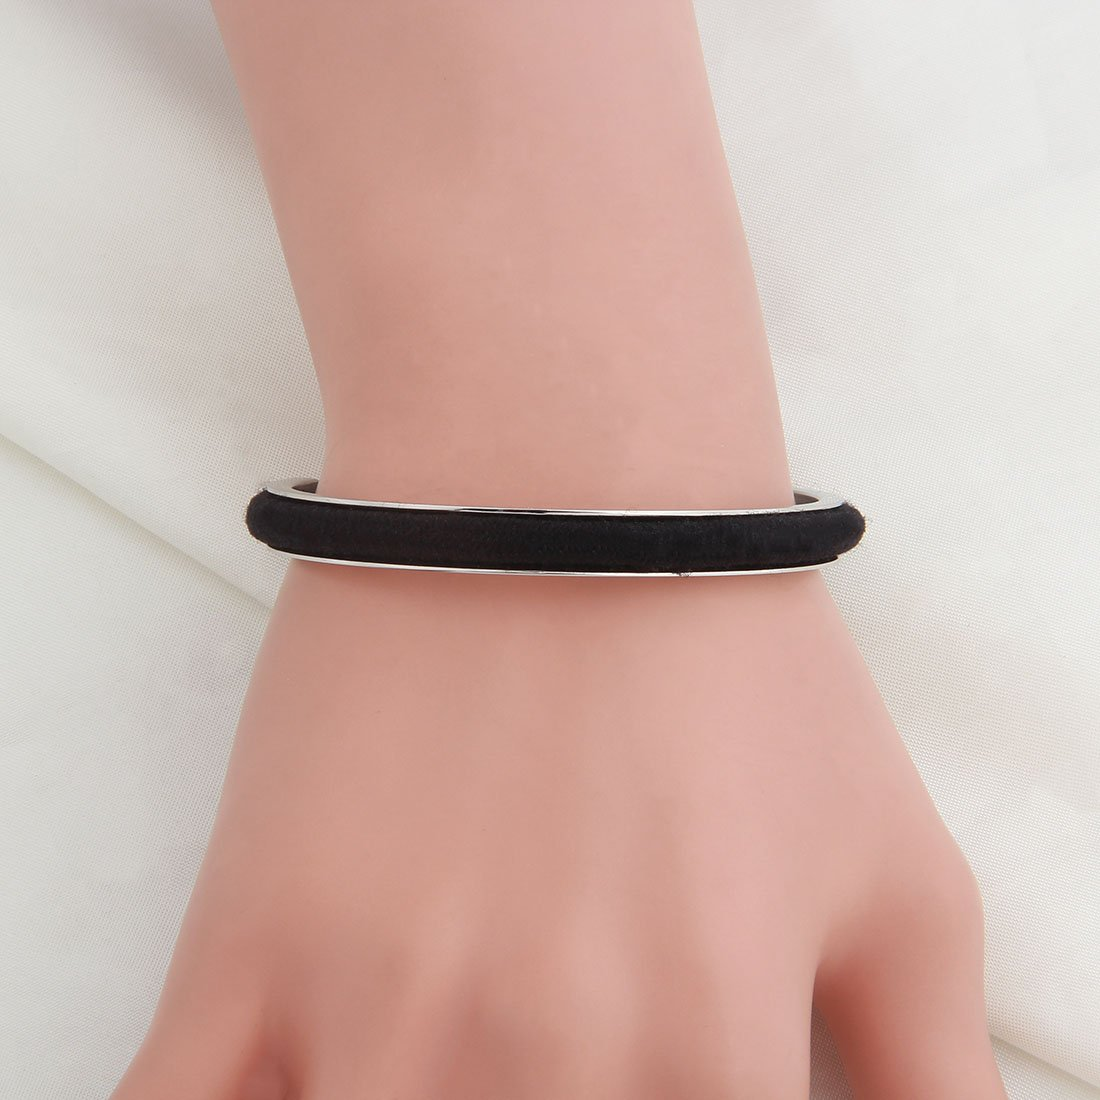 WUSUANED Awesome Nurse Hair Tie Grooved Cuff Bangle Bracelet Gift for Nurse Medical Student